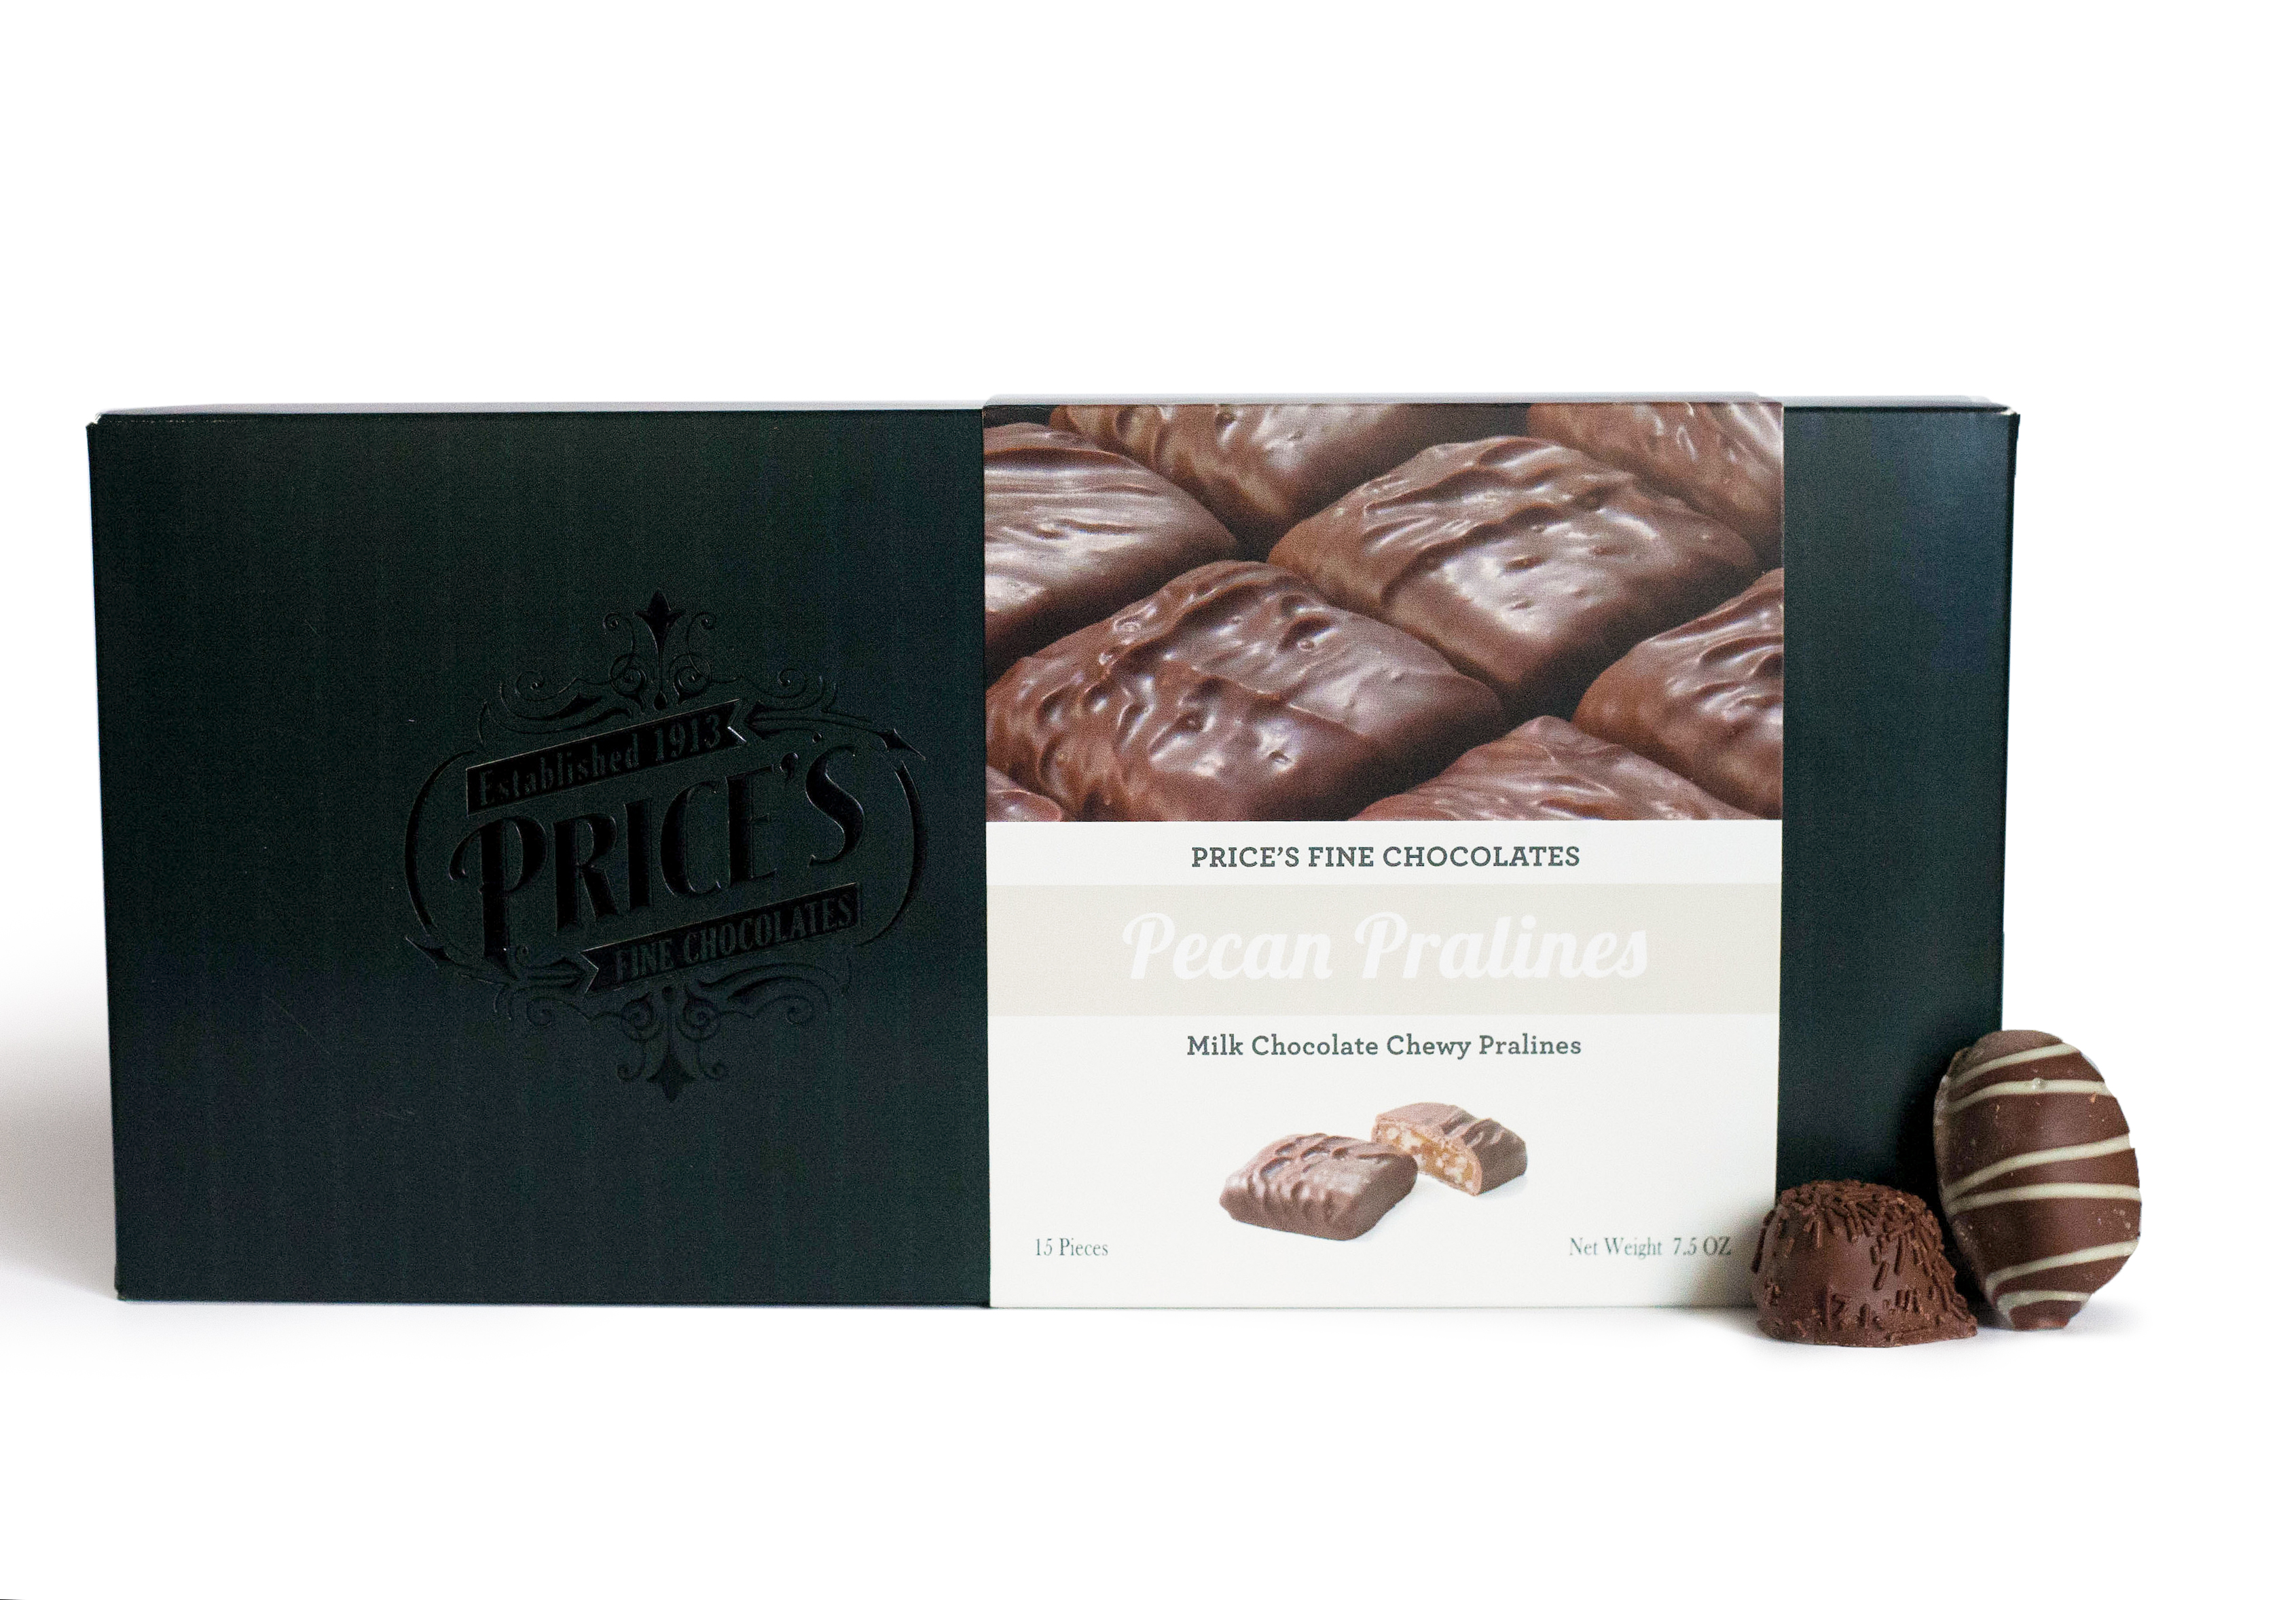 Box Sleeves for Price's Fine Chocolates (http://www.sweetshopusa.com/prices-fine-chocolate_